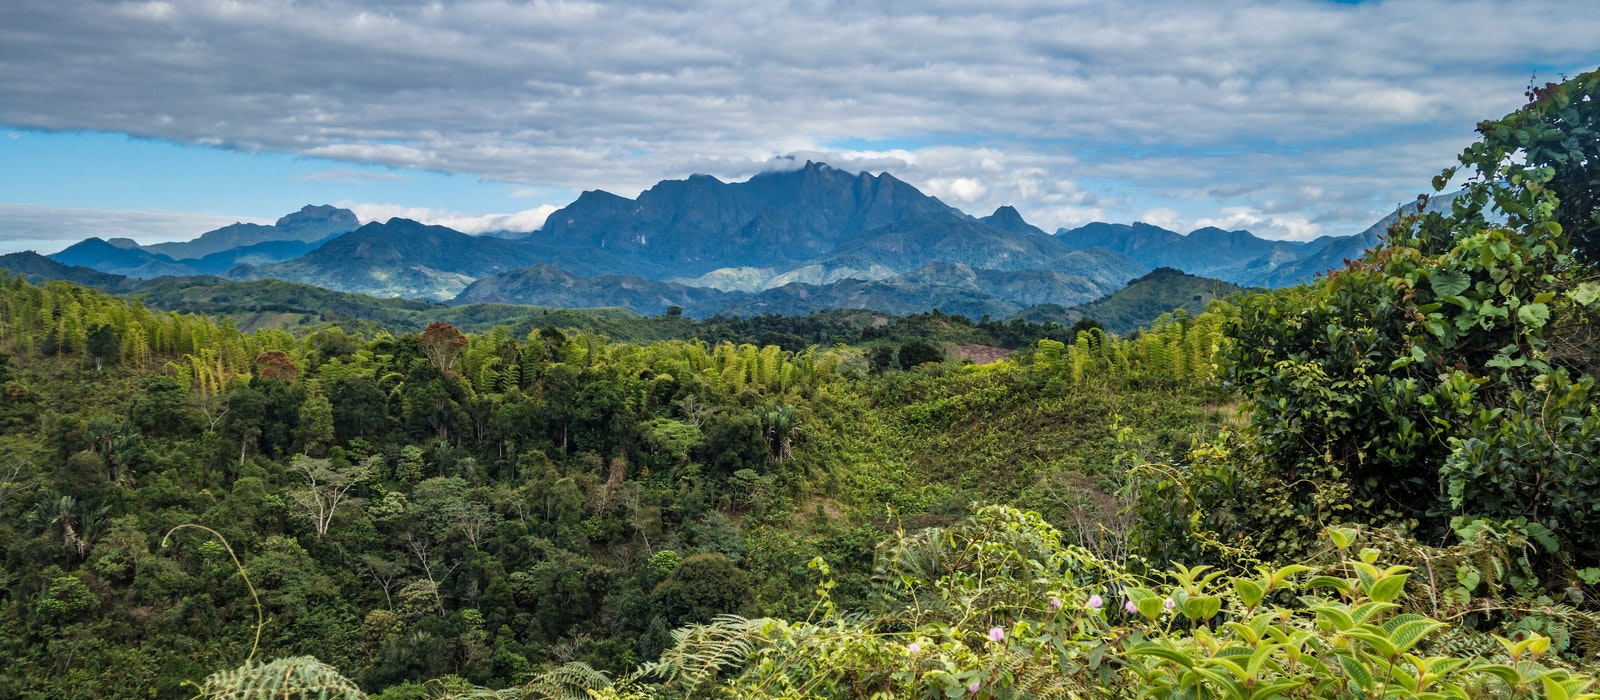 Explore the dense jungle and mountaintop cloud forests of Madagascar's Marojejy National Park in search of endangered lemurs.